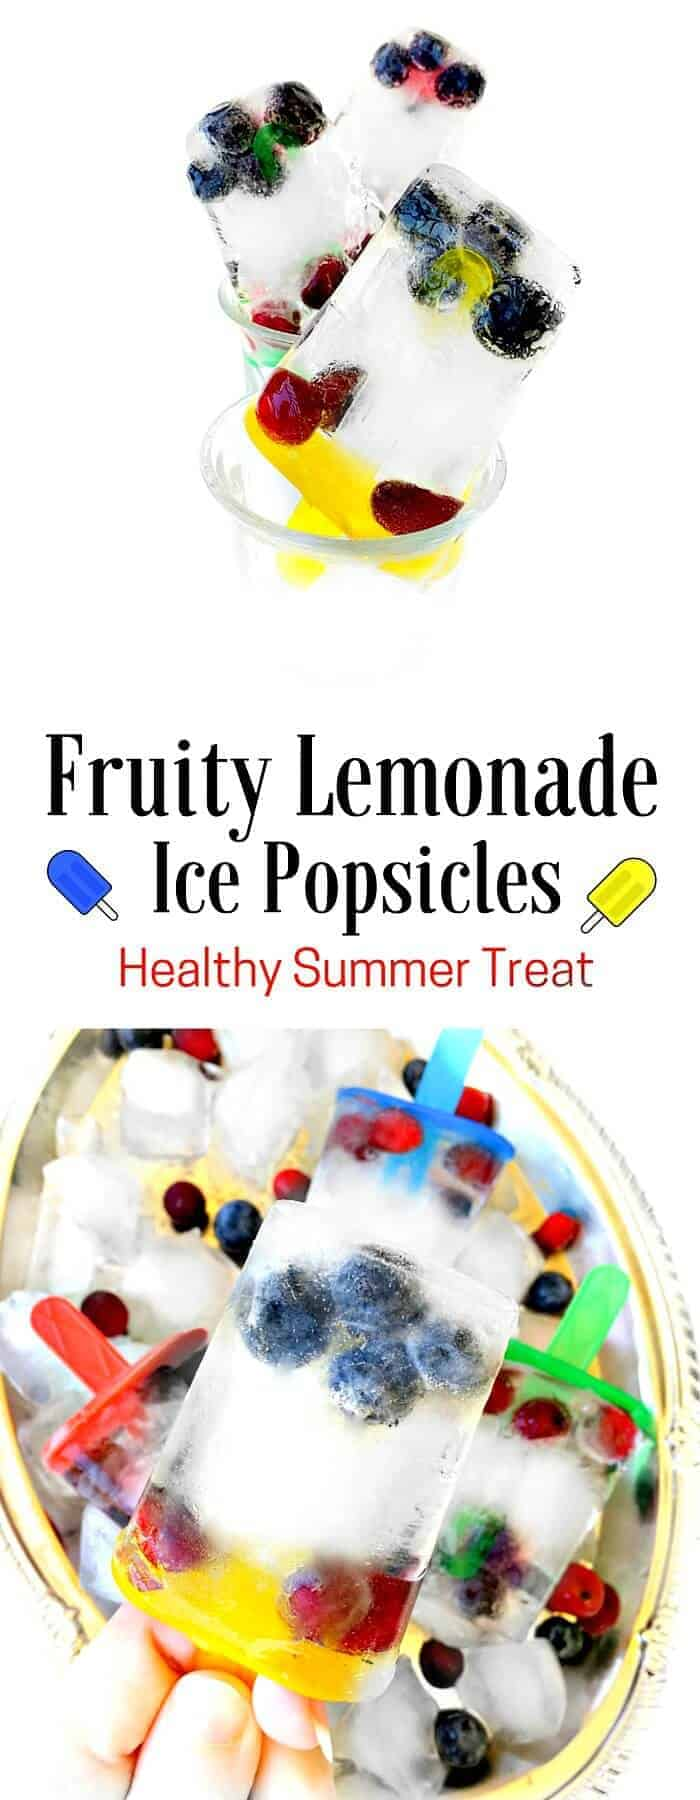 Fruity Lemonade Ice Popsicles - Healthy Summer Treat : #lemonade #ice #popsicle #healthy #fruit #pop